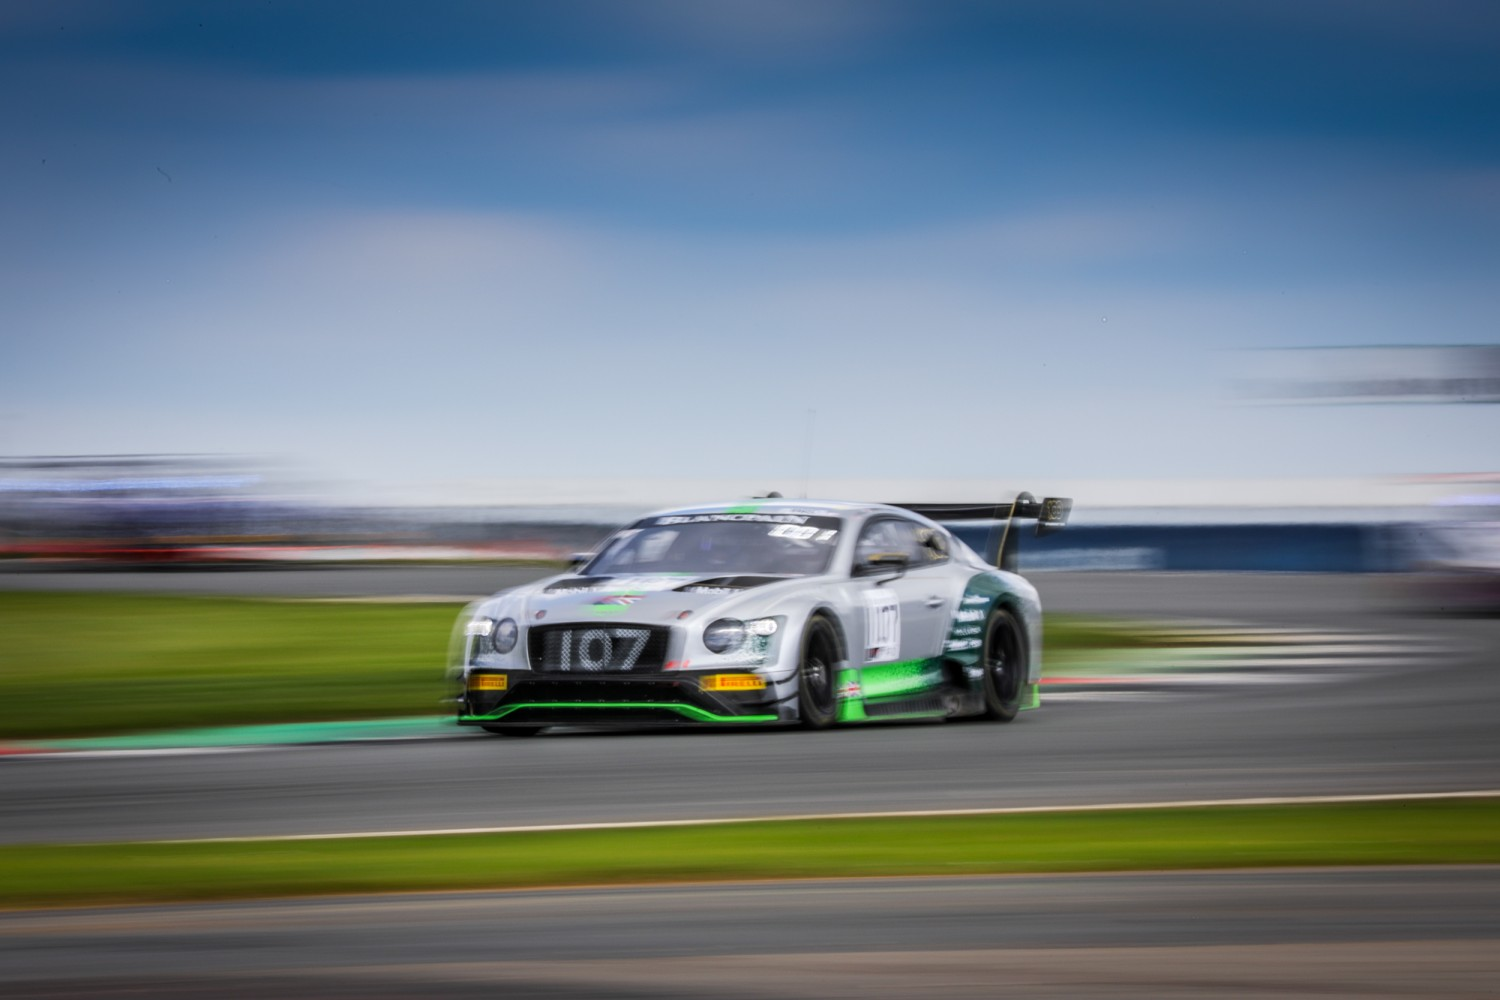 Bentley begins home event on top as Pepper leads free practice at Silverstone